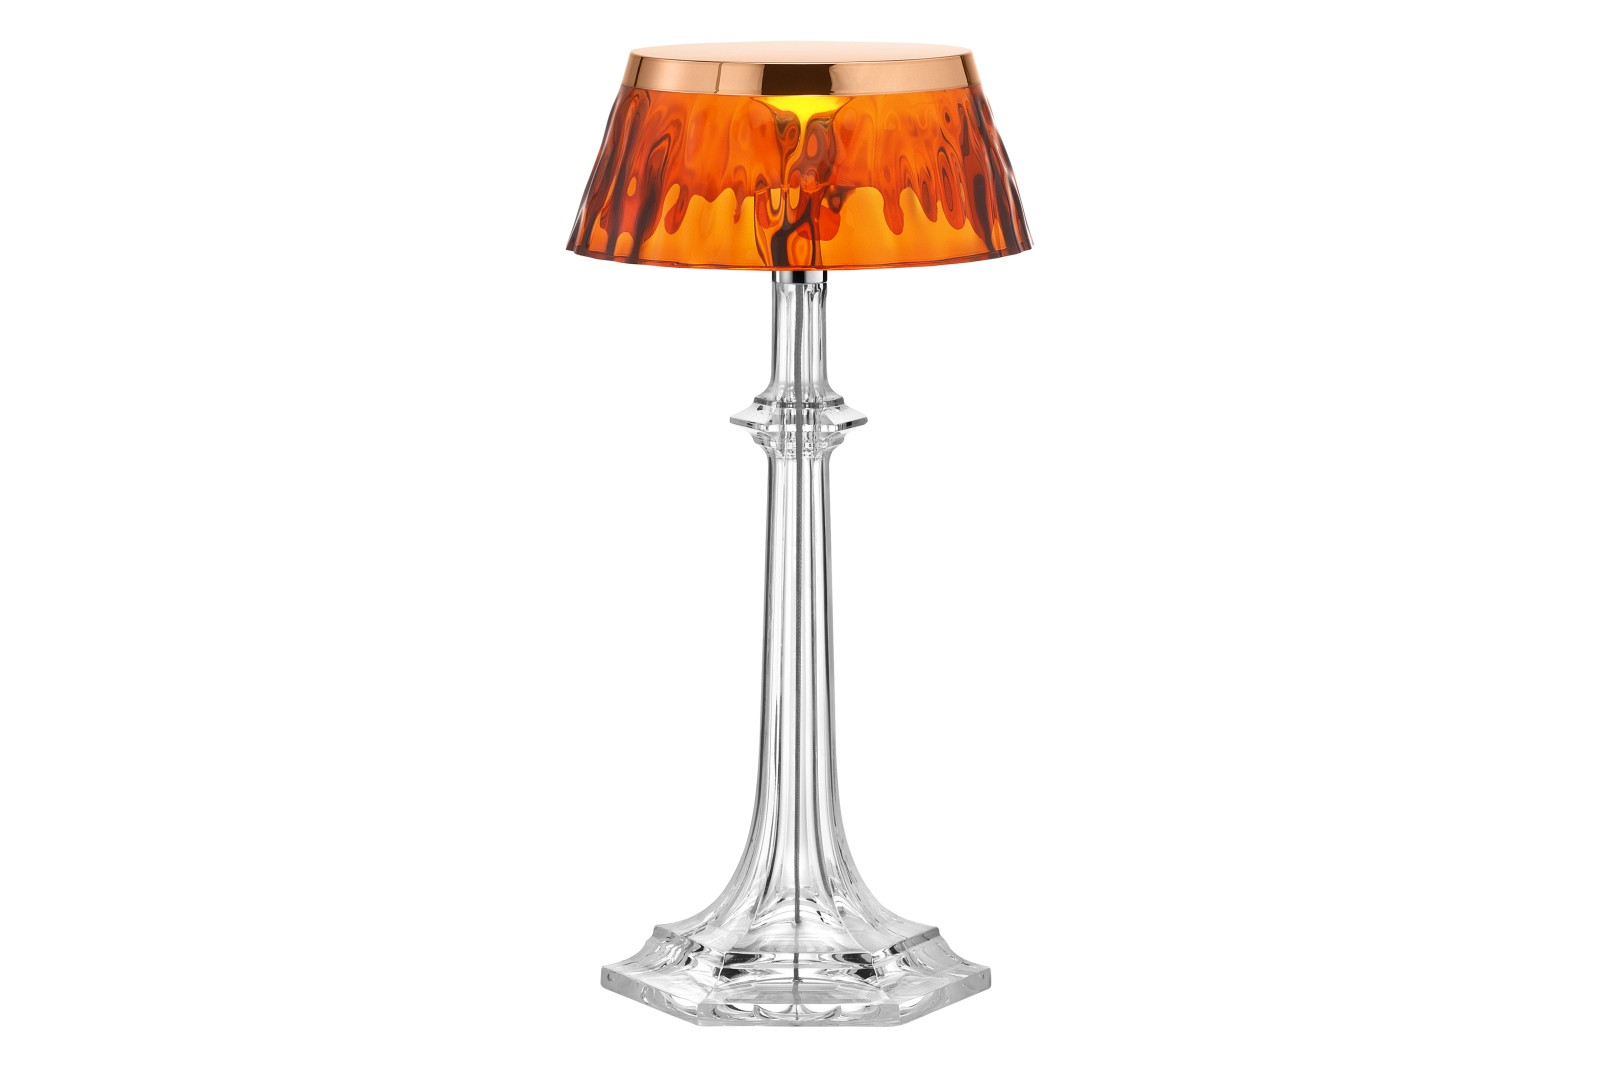 Bon Jour Versailles Small Table Lamp PMMA Polished Copper, PMMA Amber